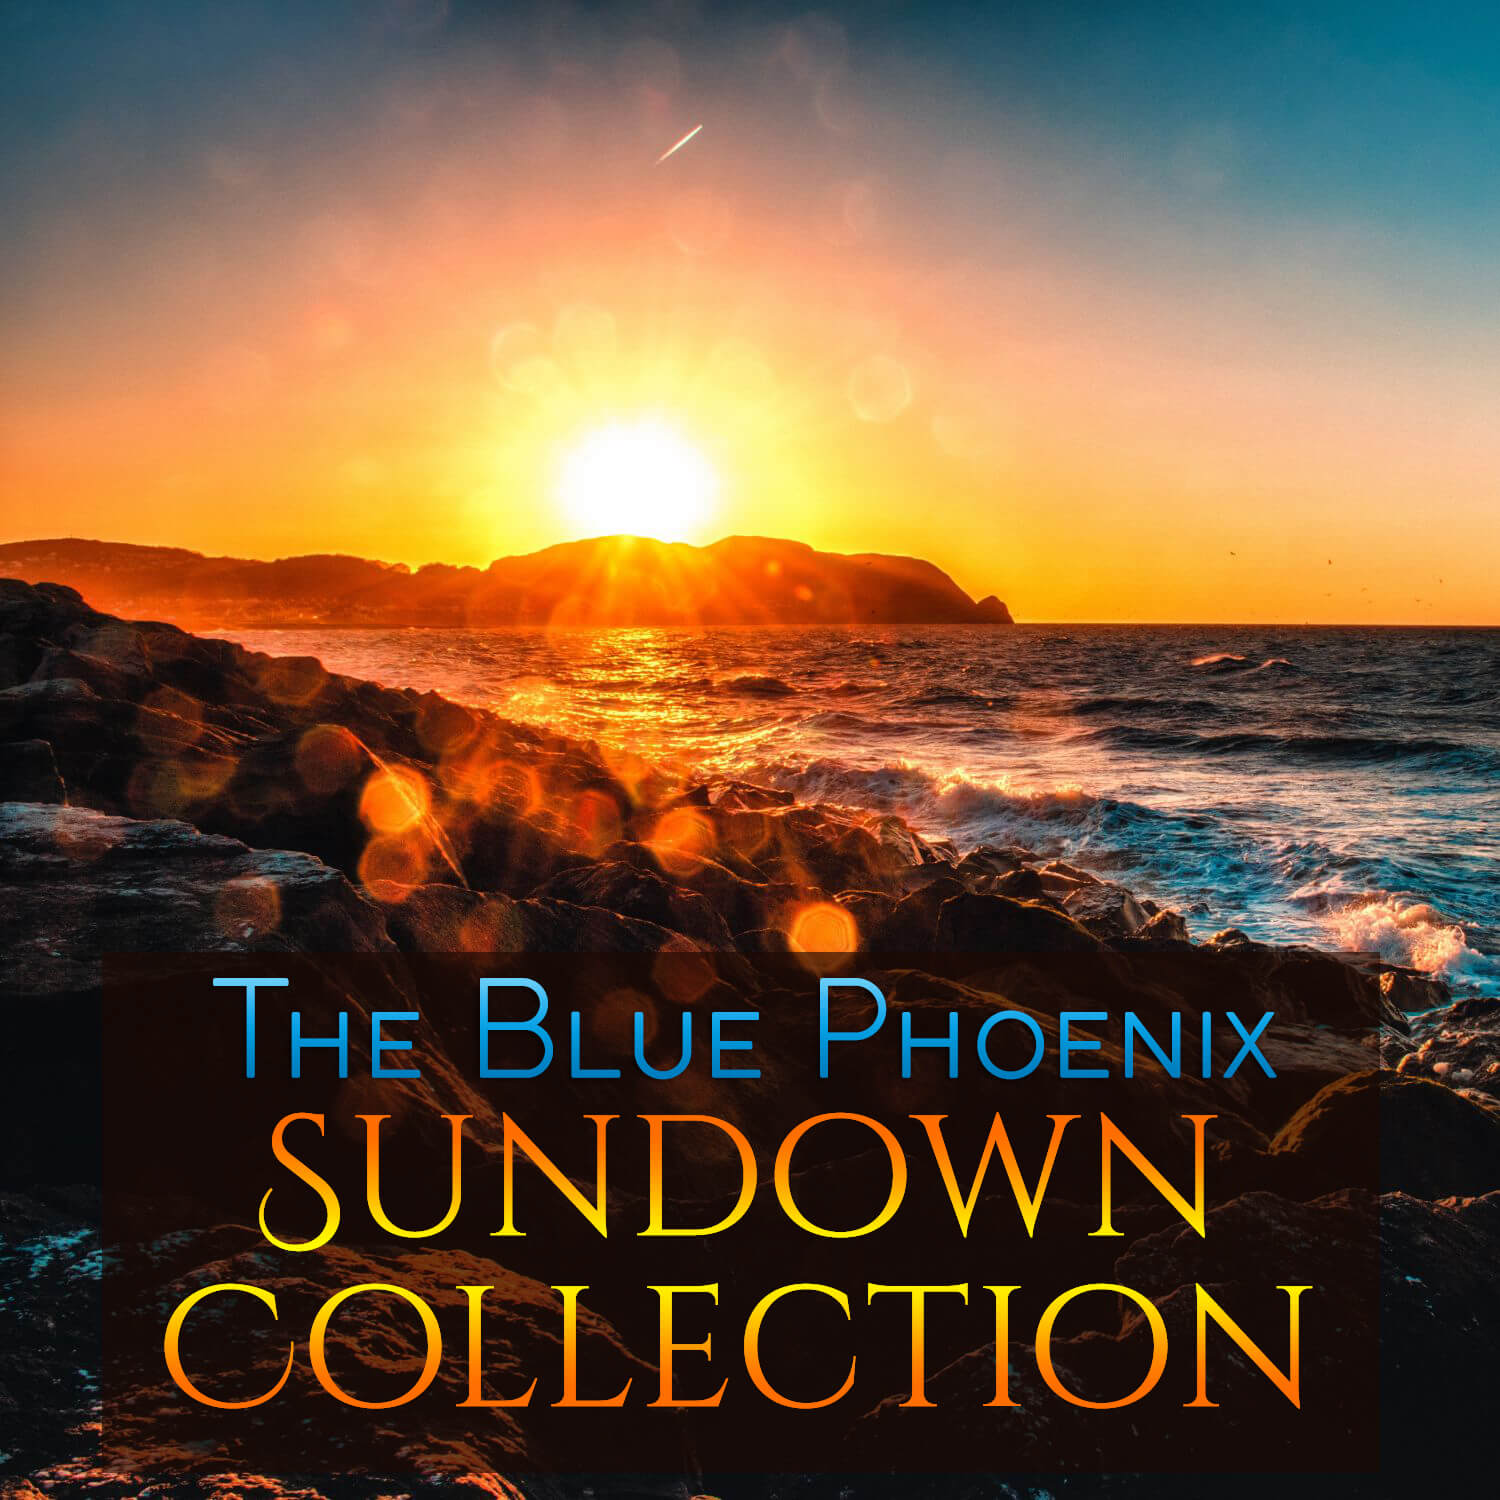 Sunset over sea and rocks as cover image for The Blue Phoenix Sundown Collection